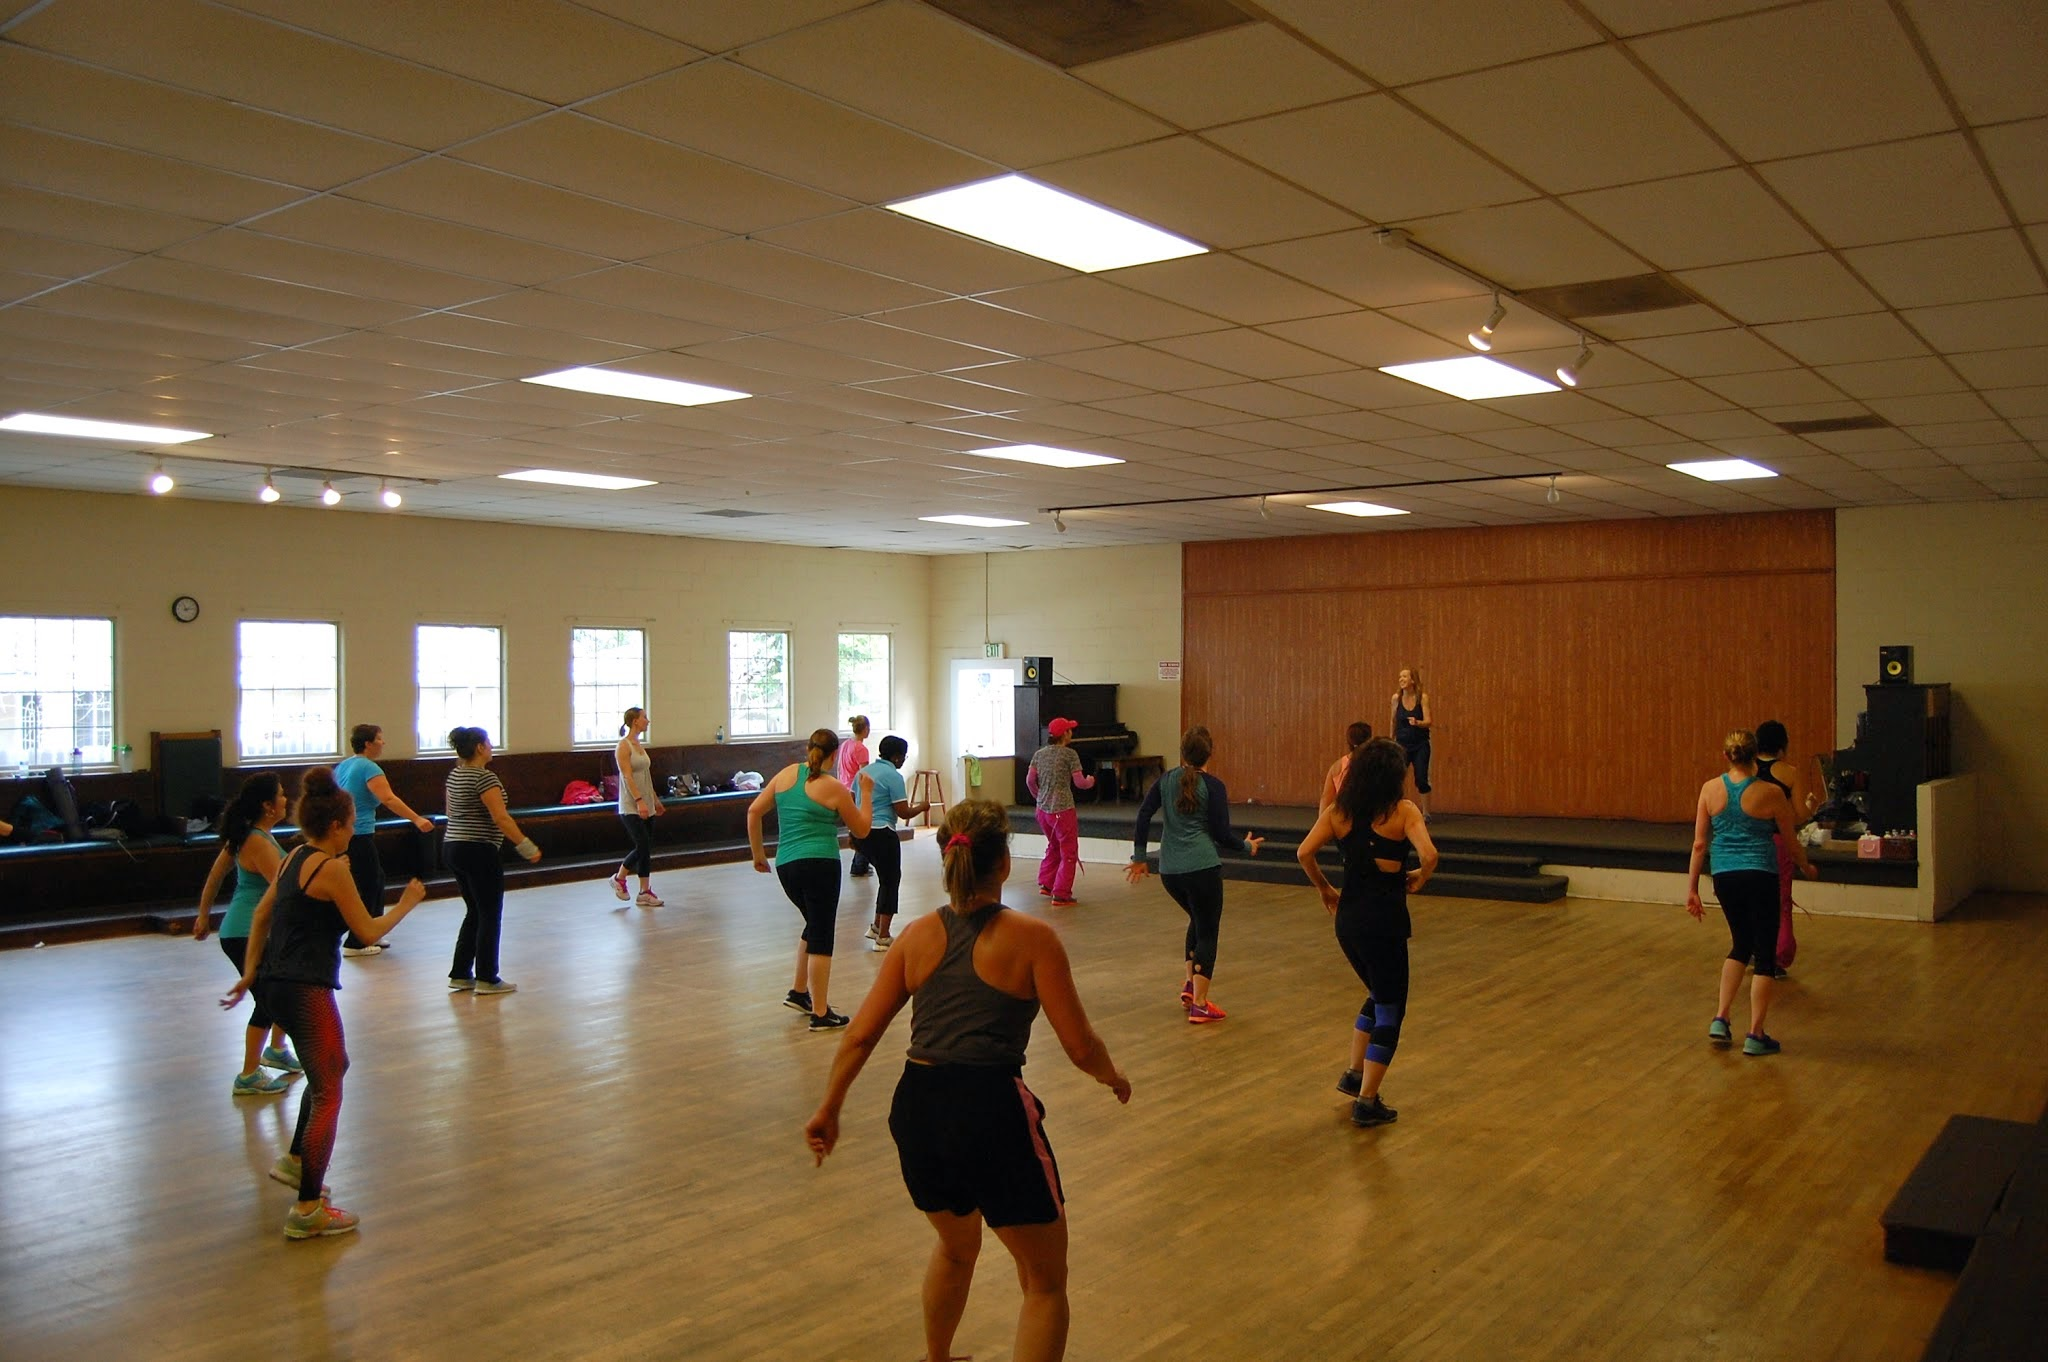 Another great Zumba class at The Grange!